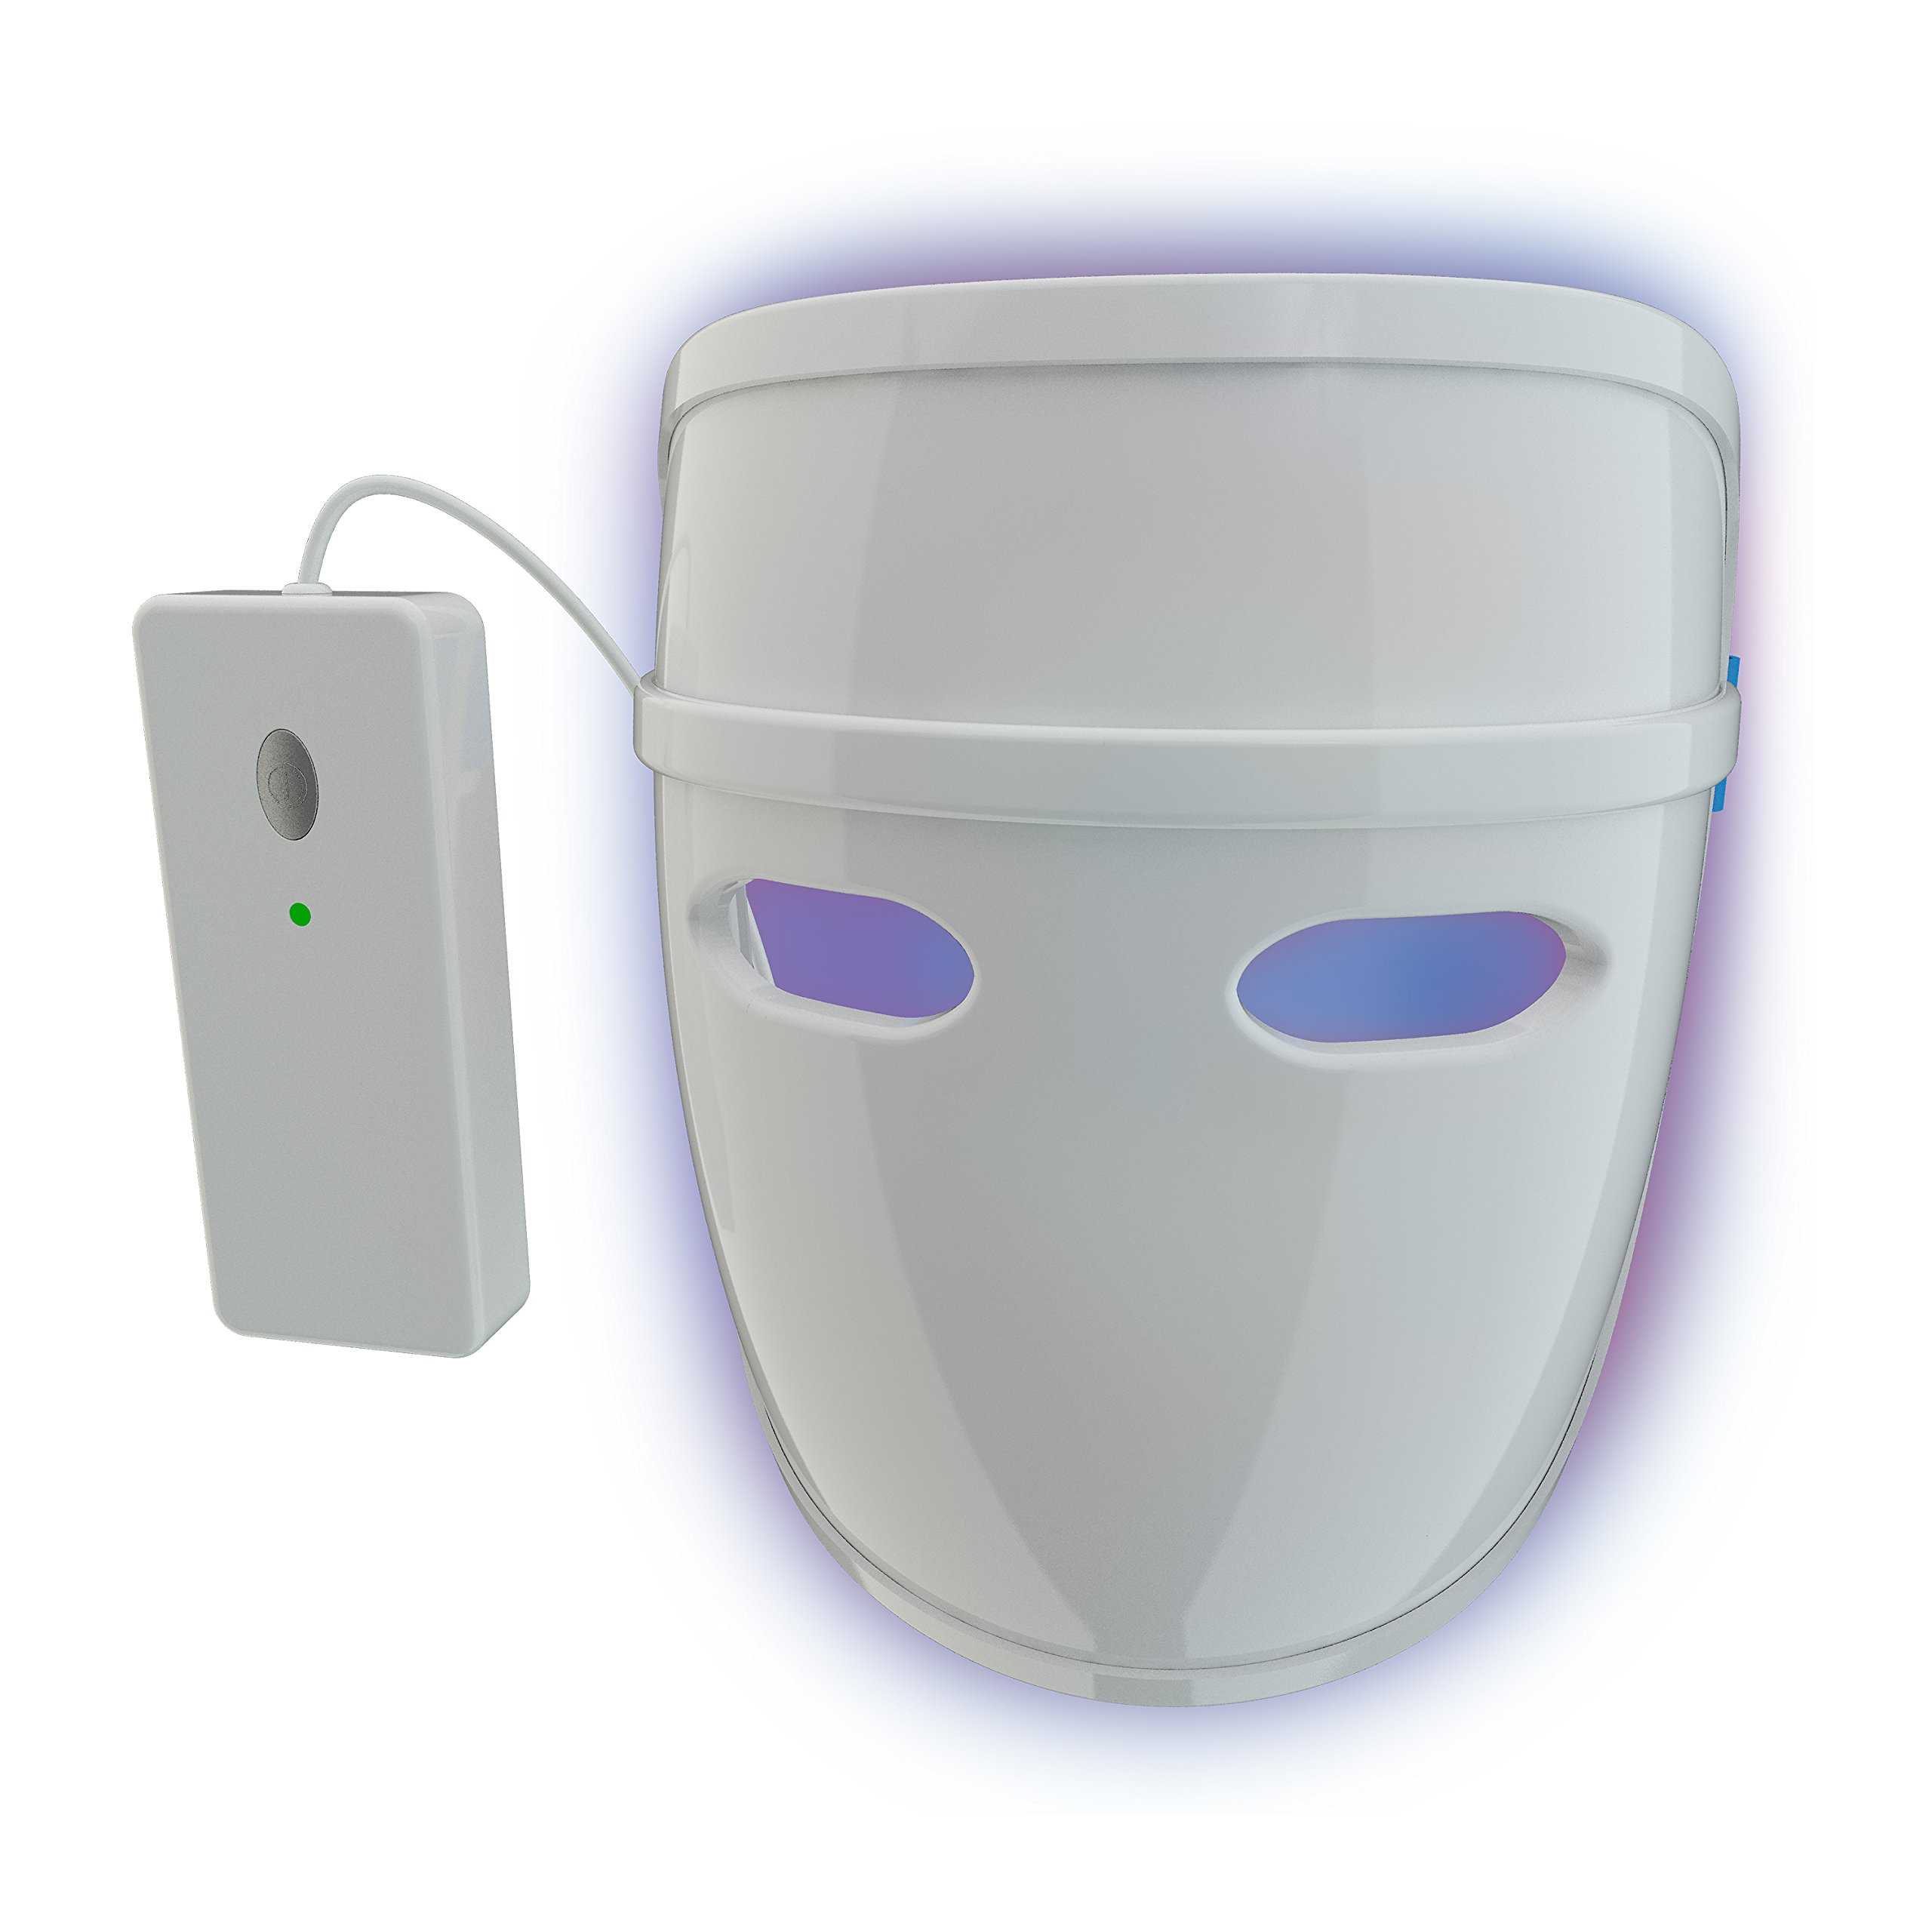 Pulsaderm - Acne Clearing Mask - Treats Acne Breakouts - Safe for Daily Use - FDA-Cleared LED Light Therapy Mask - Prevents Future Breakouts - Lightweight Mask - 3 AA Batteries Included